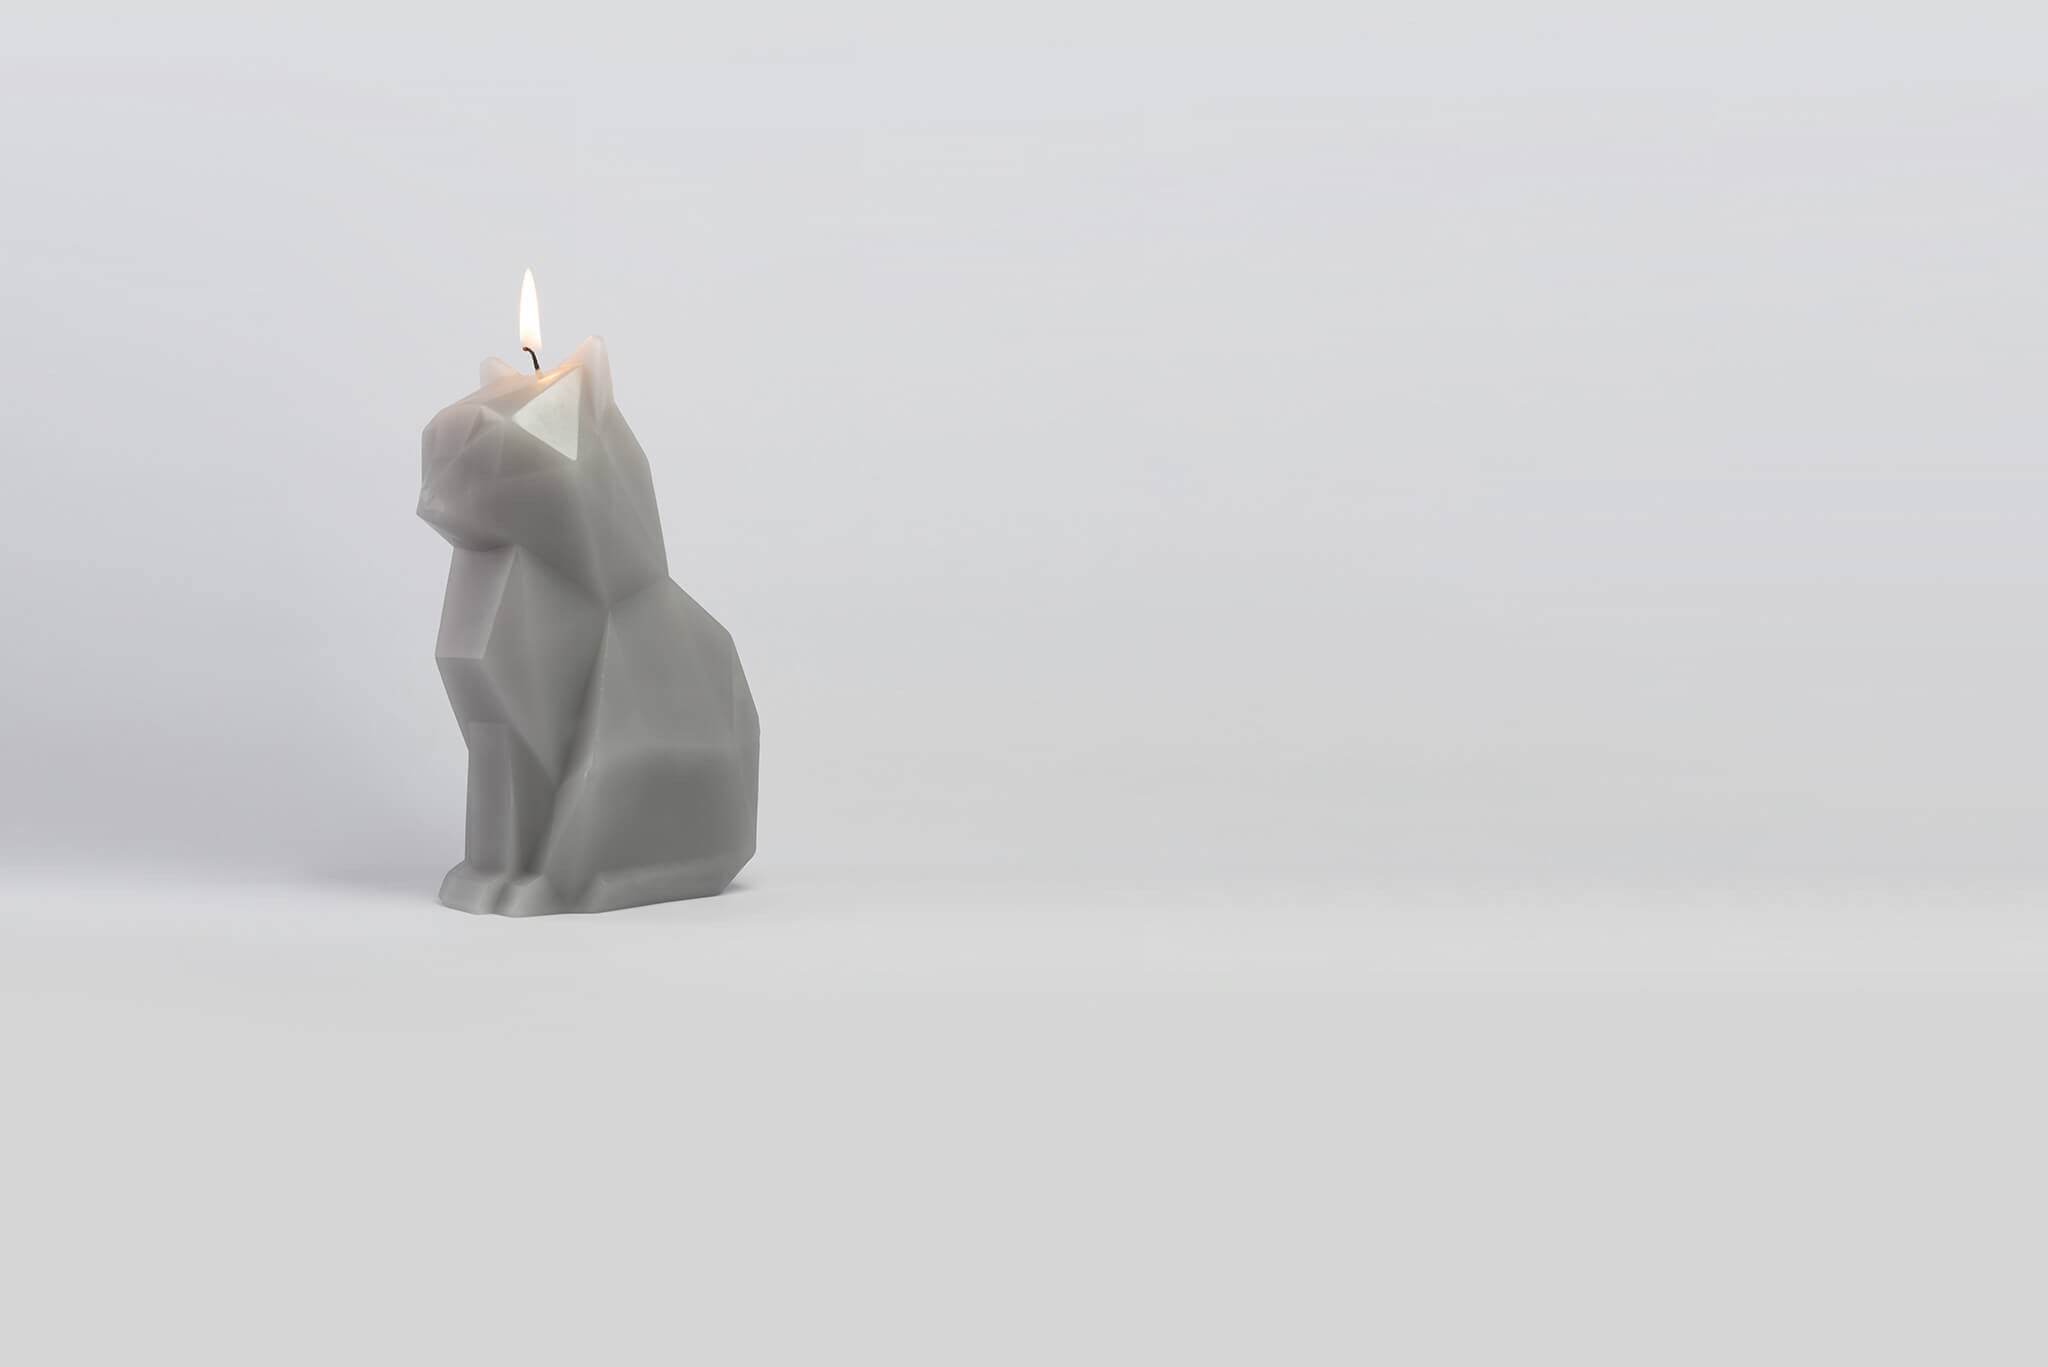 Side view of lit grey kisa the cat pyropet candle. The perfect cat gift for cat lovers.